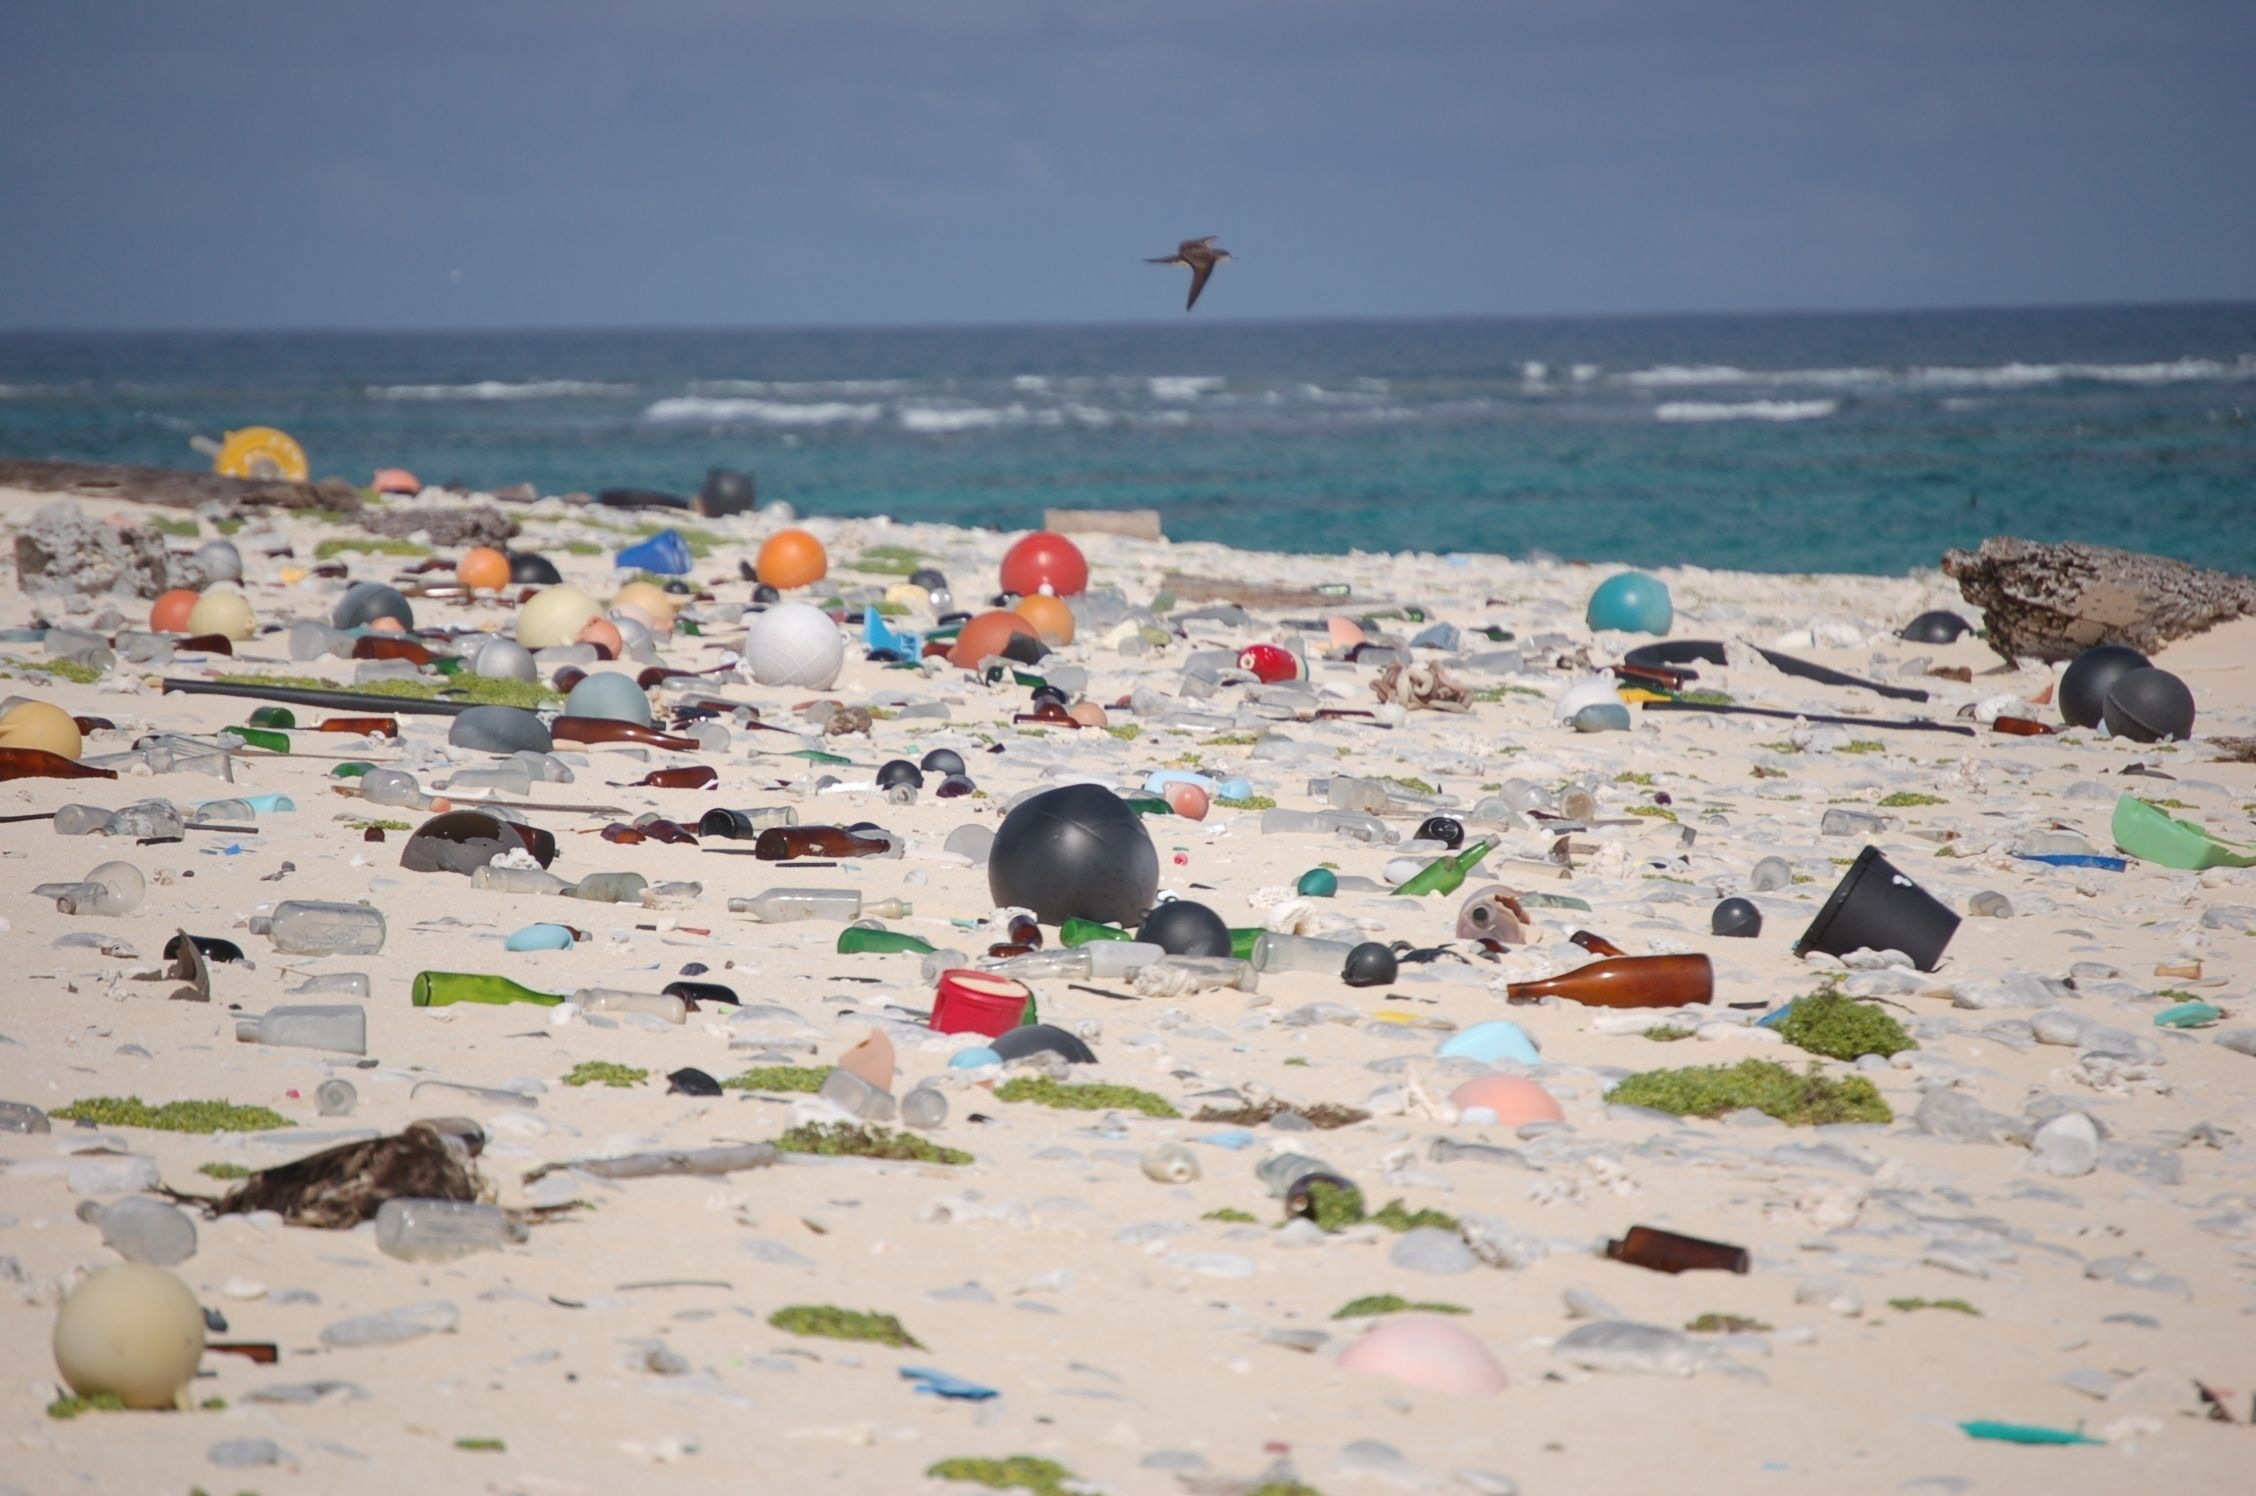 Marine debris on a beach on Laysan Island in the Hawaiian Islands National Wildlife Refuge.